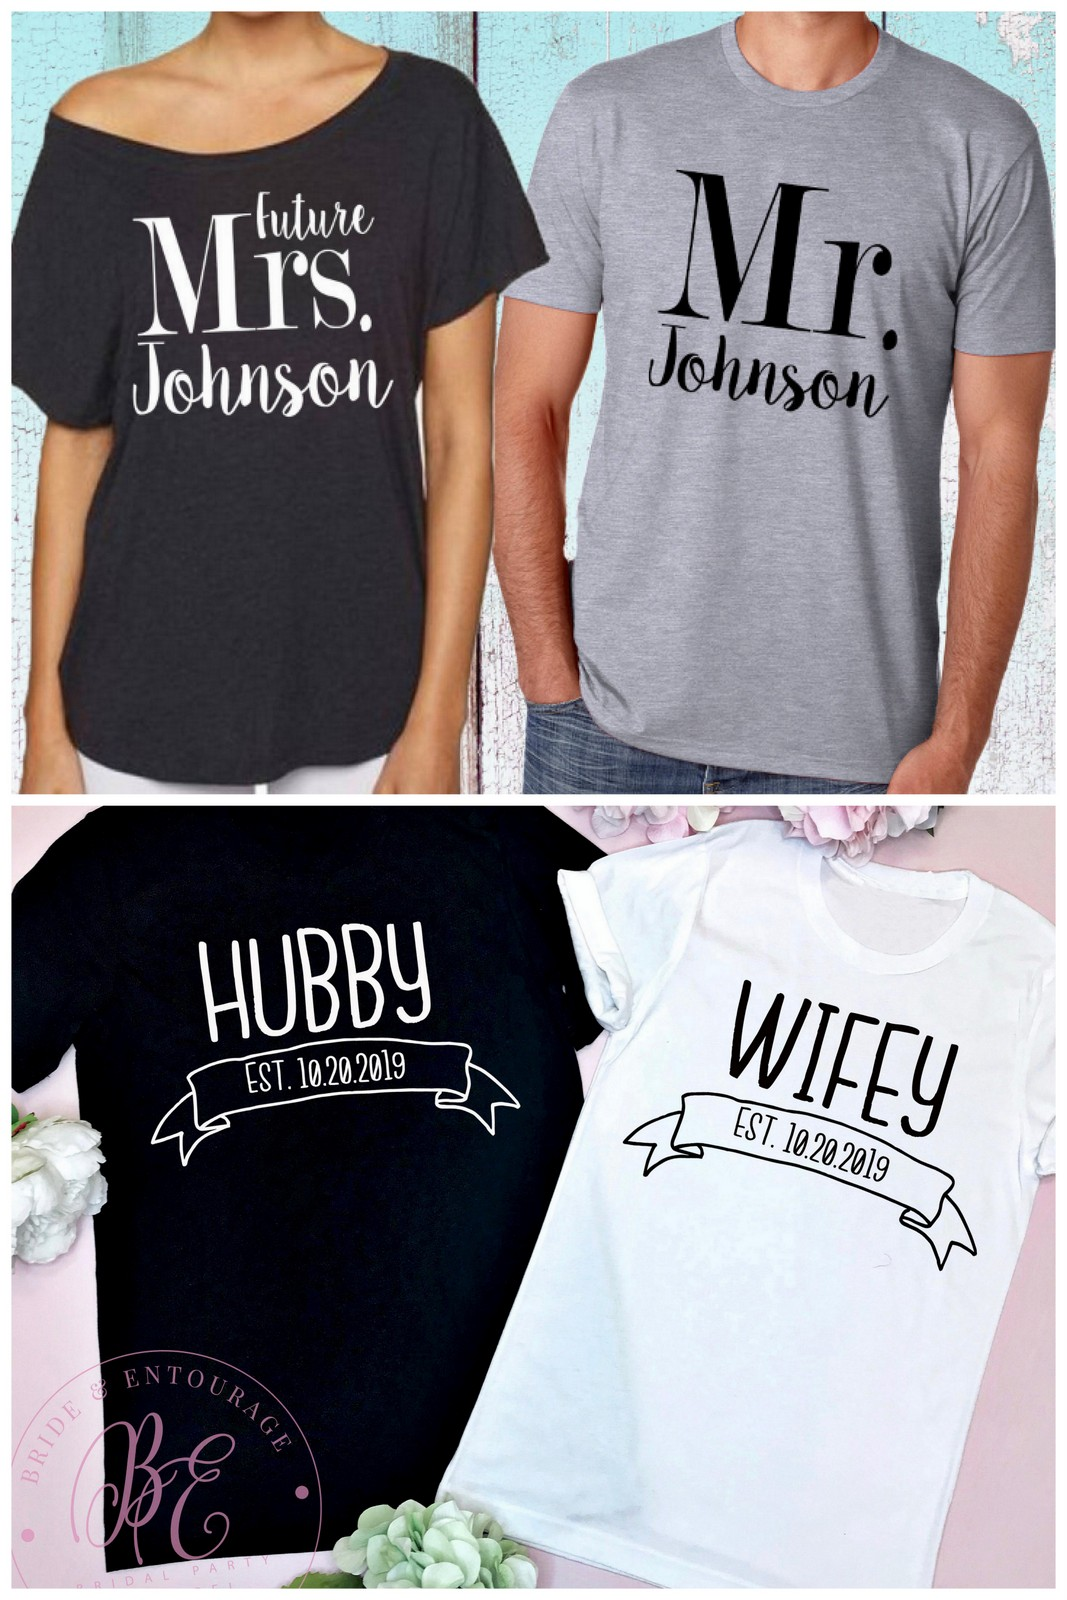 Newly-Wed Shirts